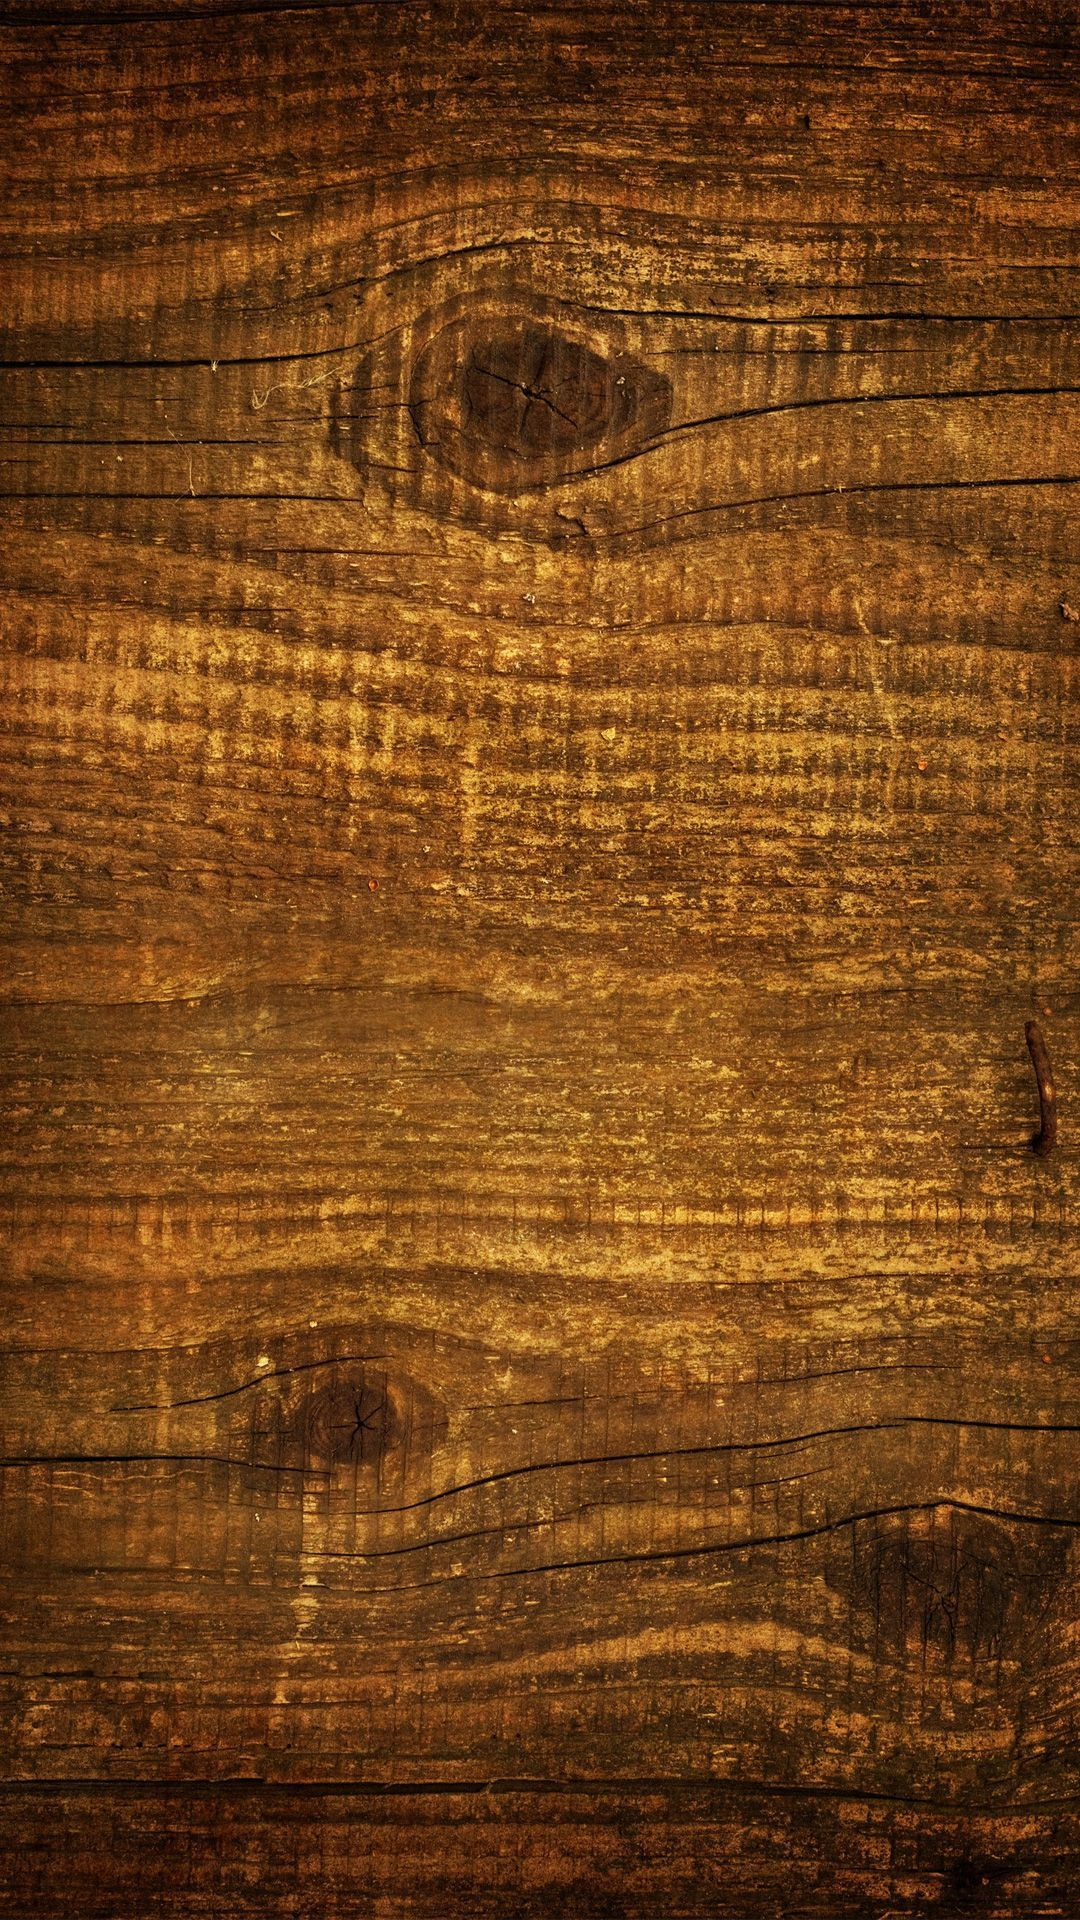 Iphone wallpaper game - Wood Grain Iphone Wallpaper